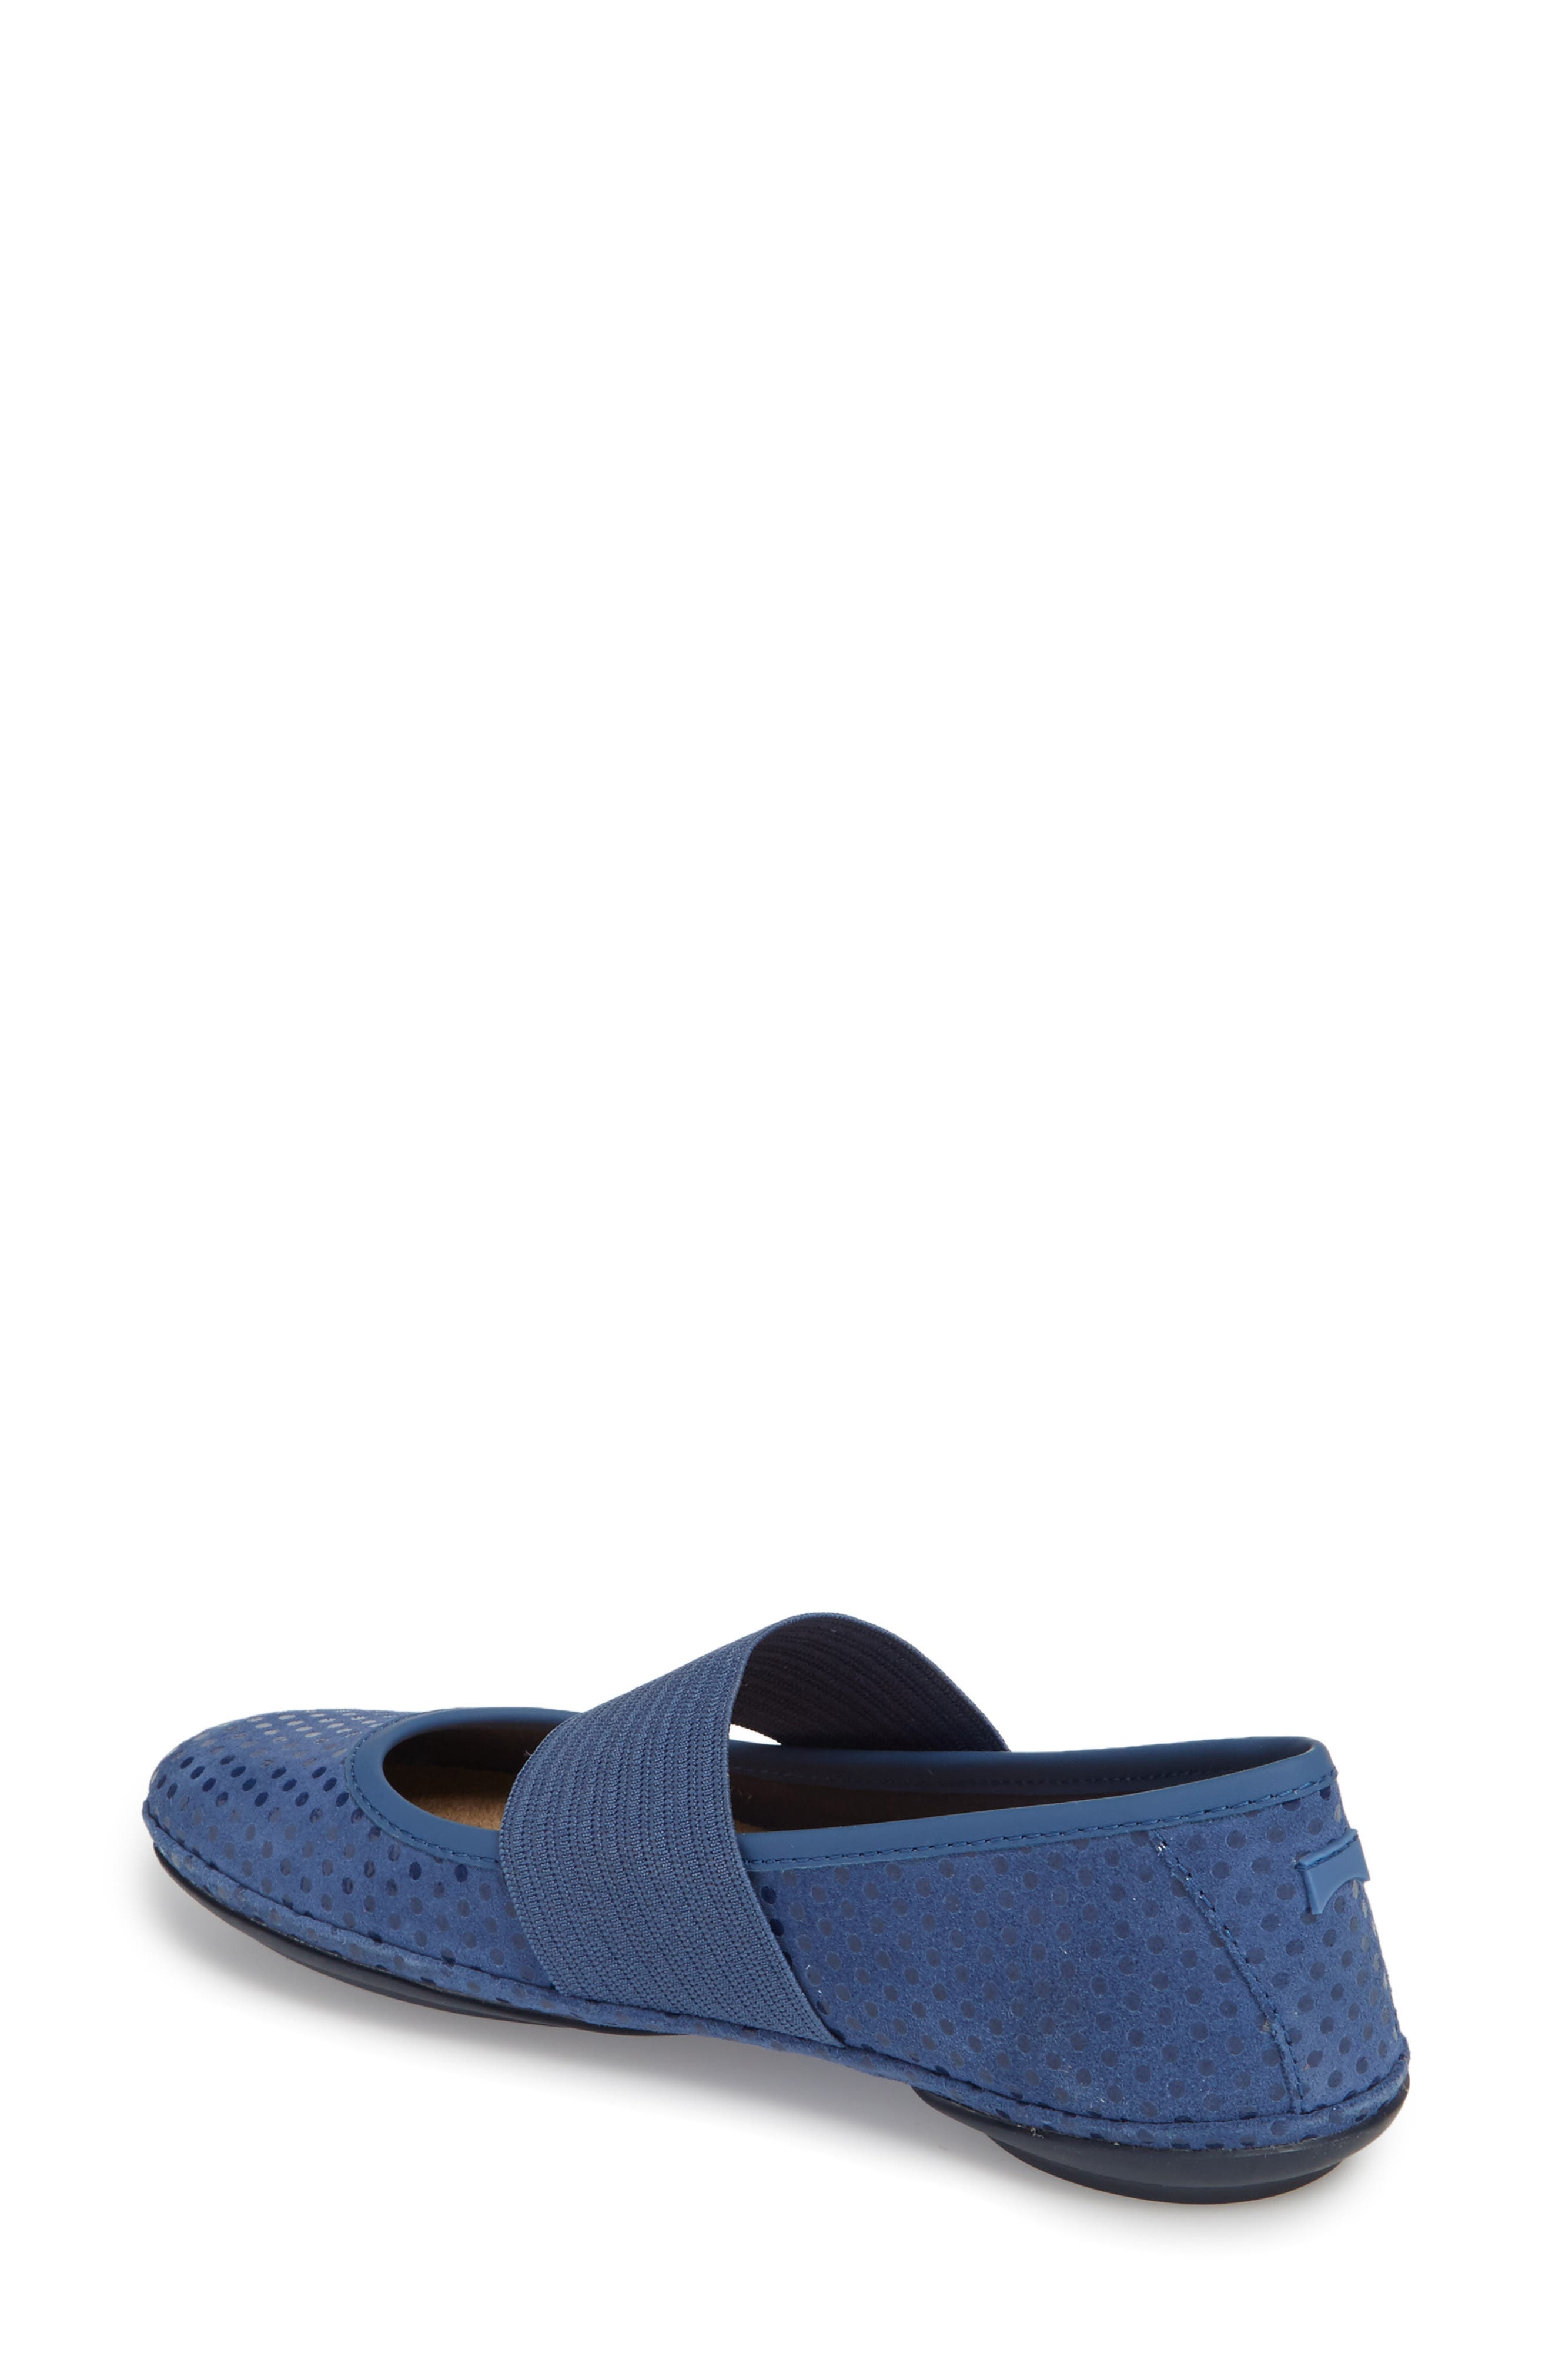 Right Nina Ballerina Flat,                             Alternate thumbnail 2, color,                             Medium Blue Nubuck